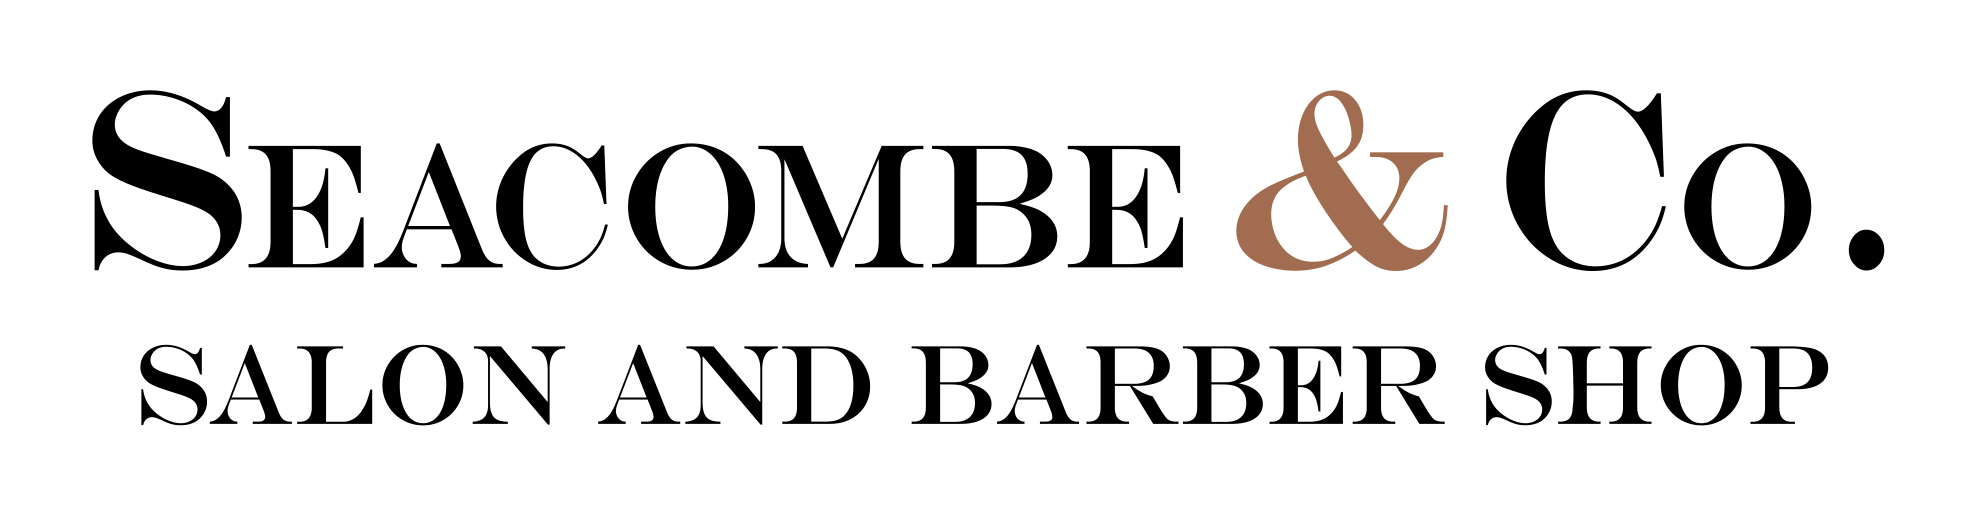 Seacombe&Co-logo-on-white.png